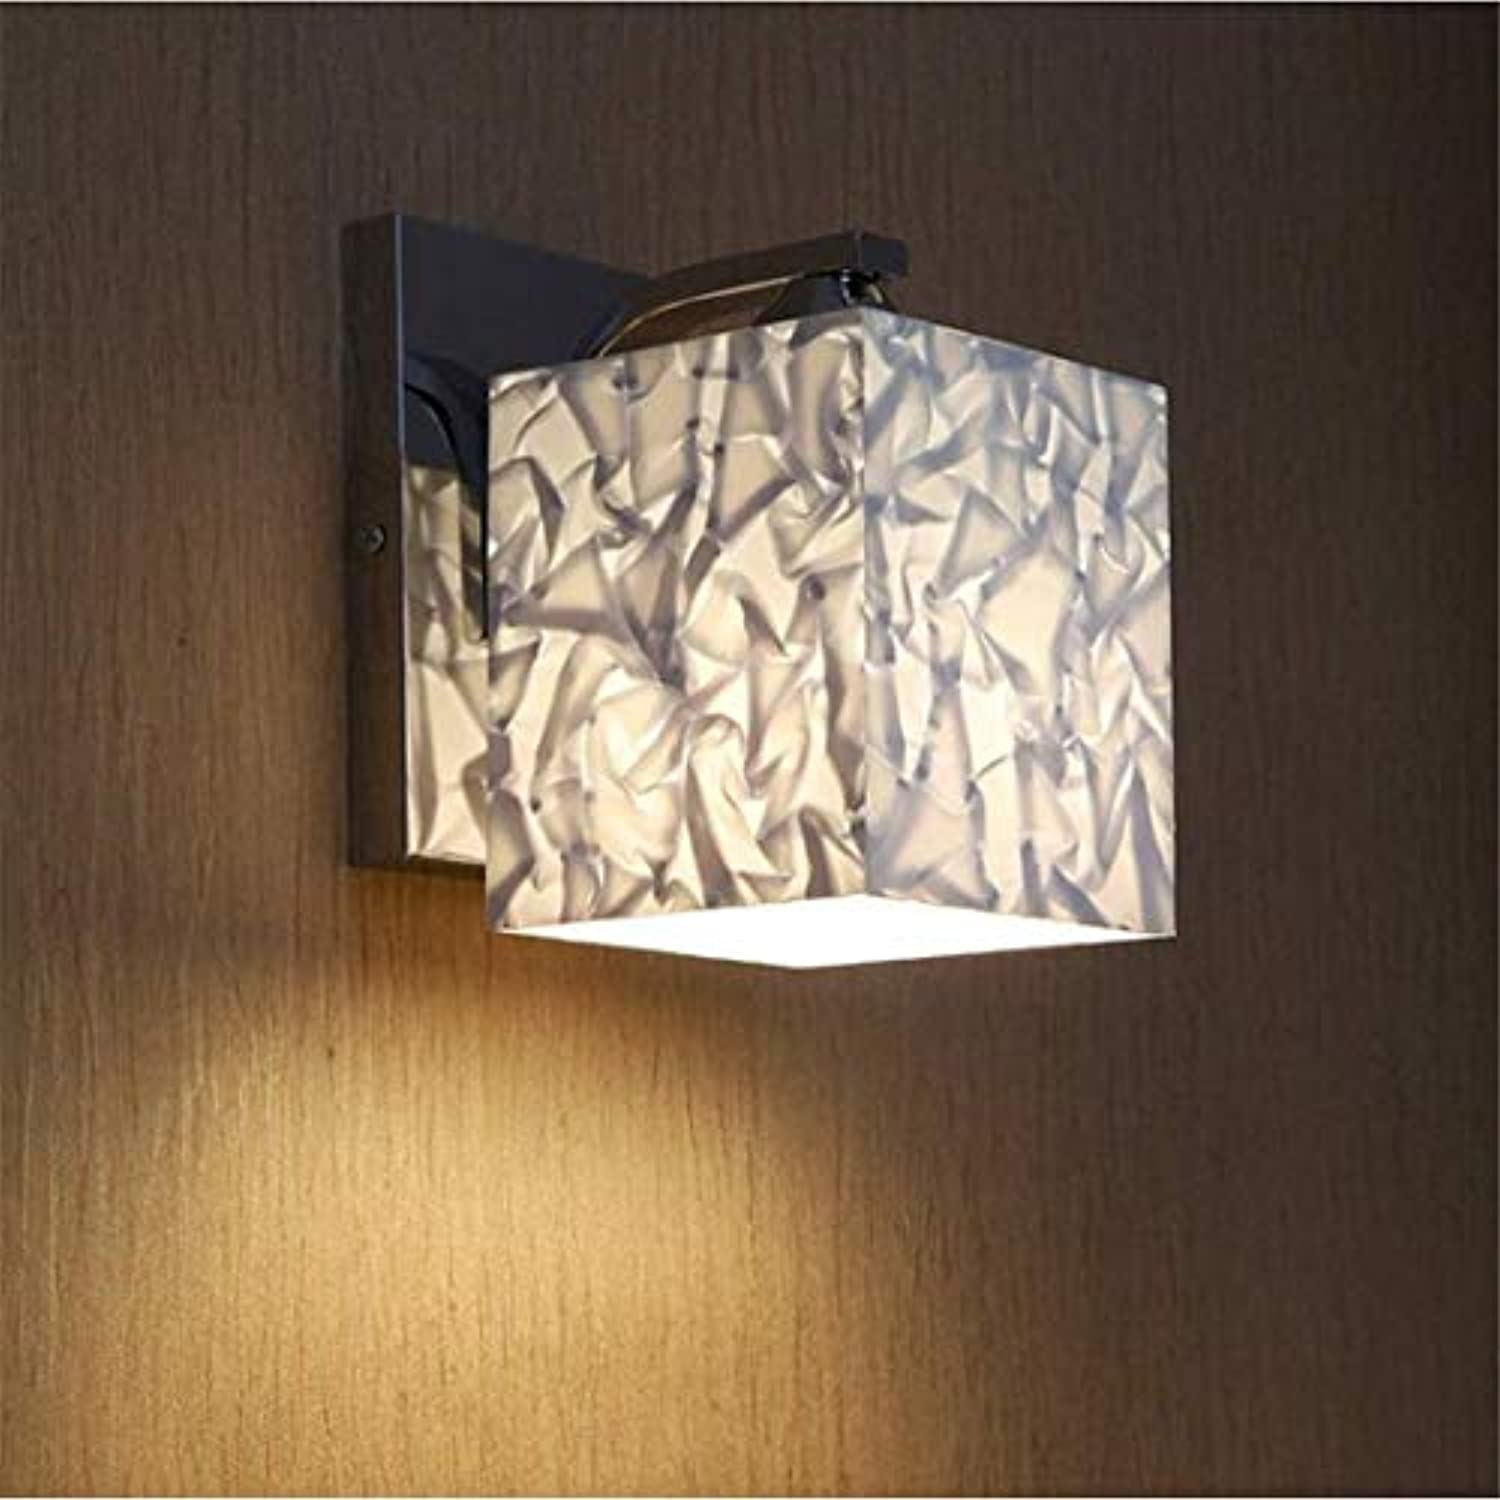 Led Wandleuchte Kronleuchterled Wall Light Chandelier Minimalist Modern Wall Light Reads With Respect To The Wall Lamp